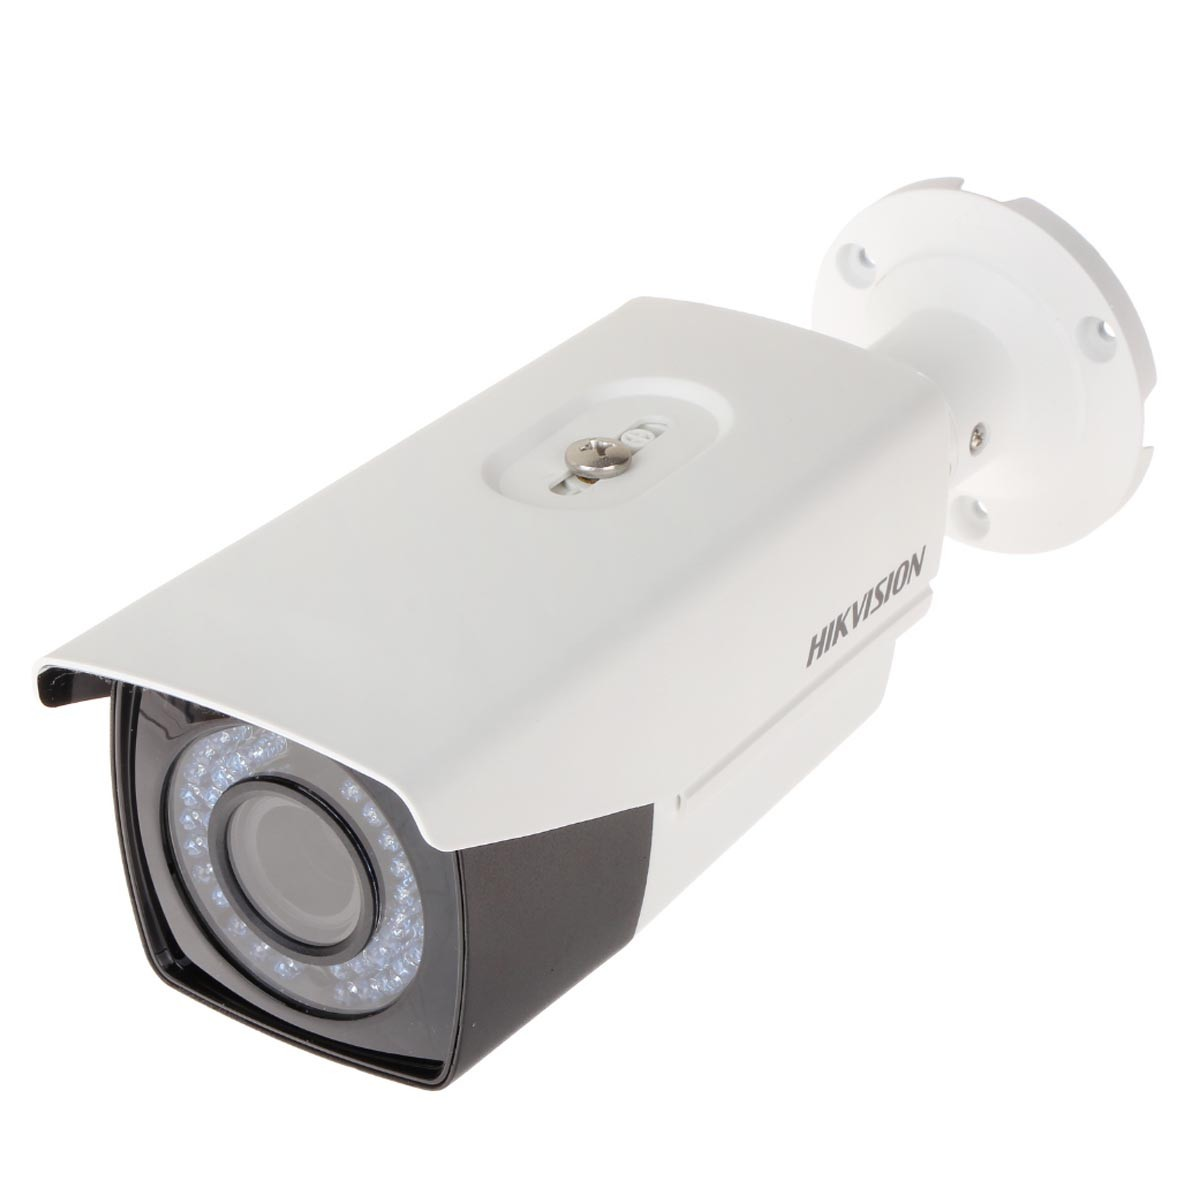 CÂMERA BULLET  HIKVISION 40MTS 2MP VARIFOCAL  2,8-12MM METAL DS-2CE16D0T-VFIR3F